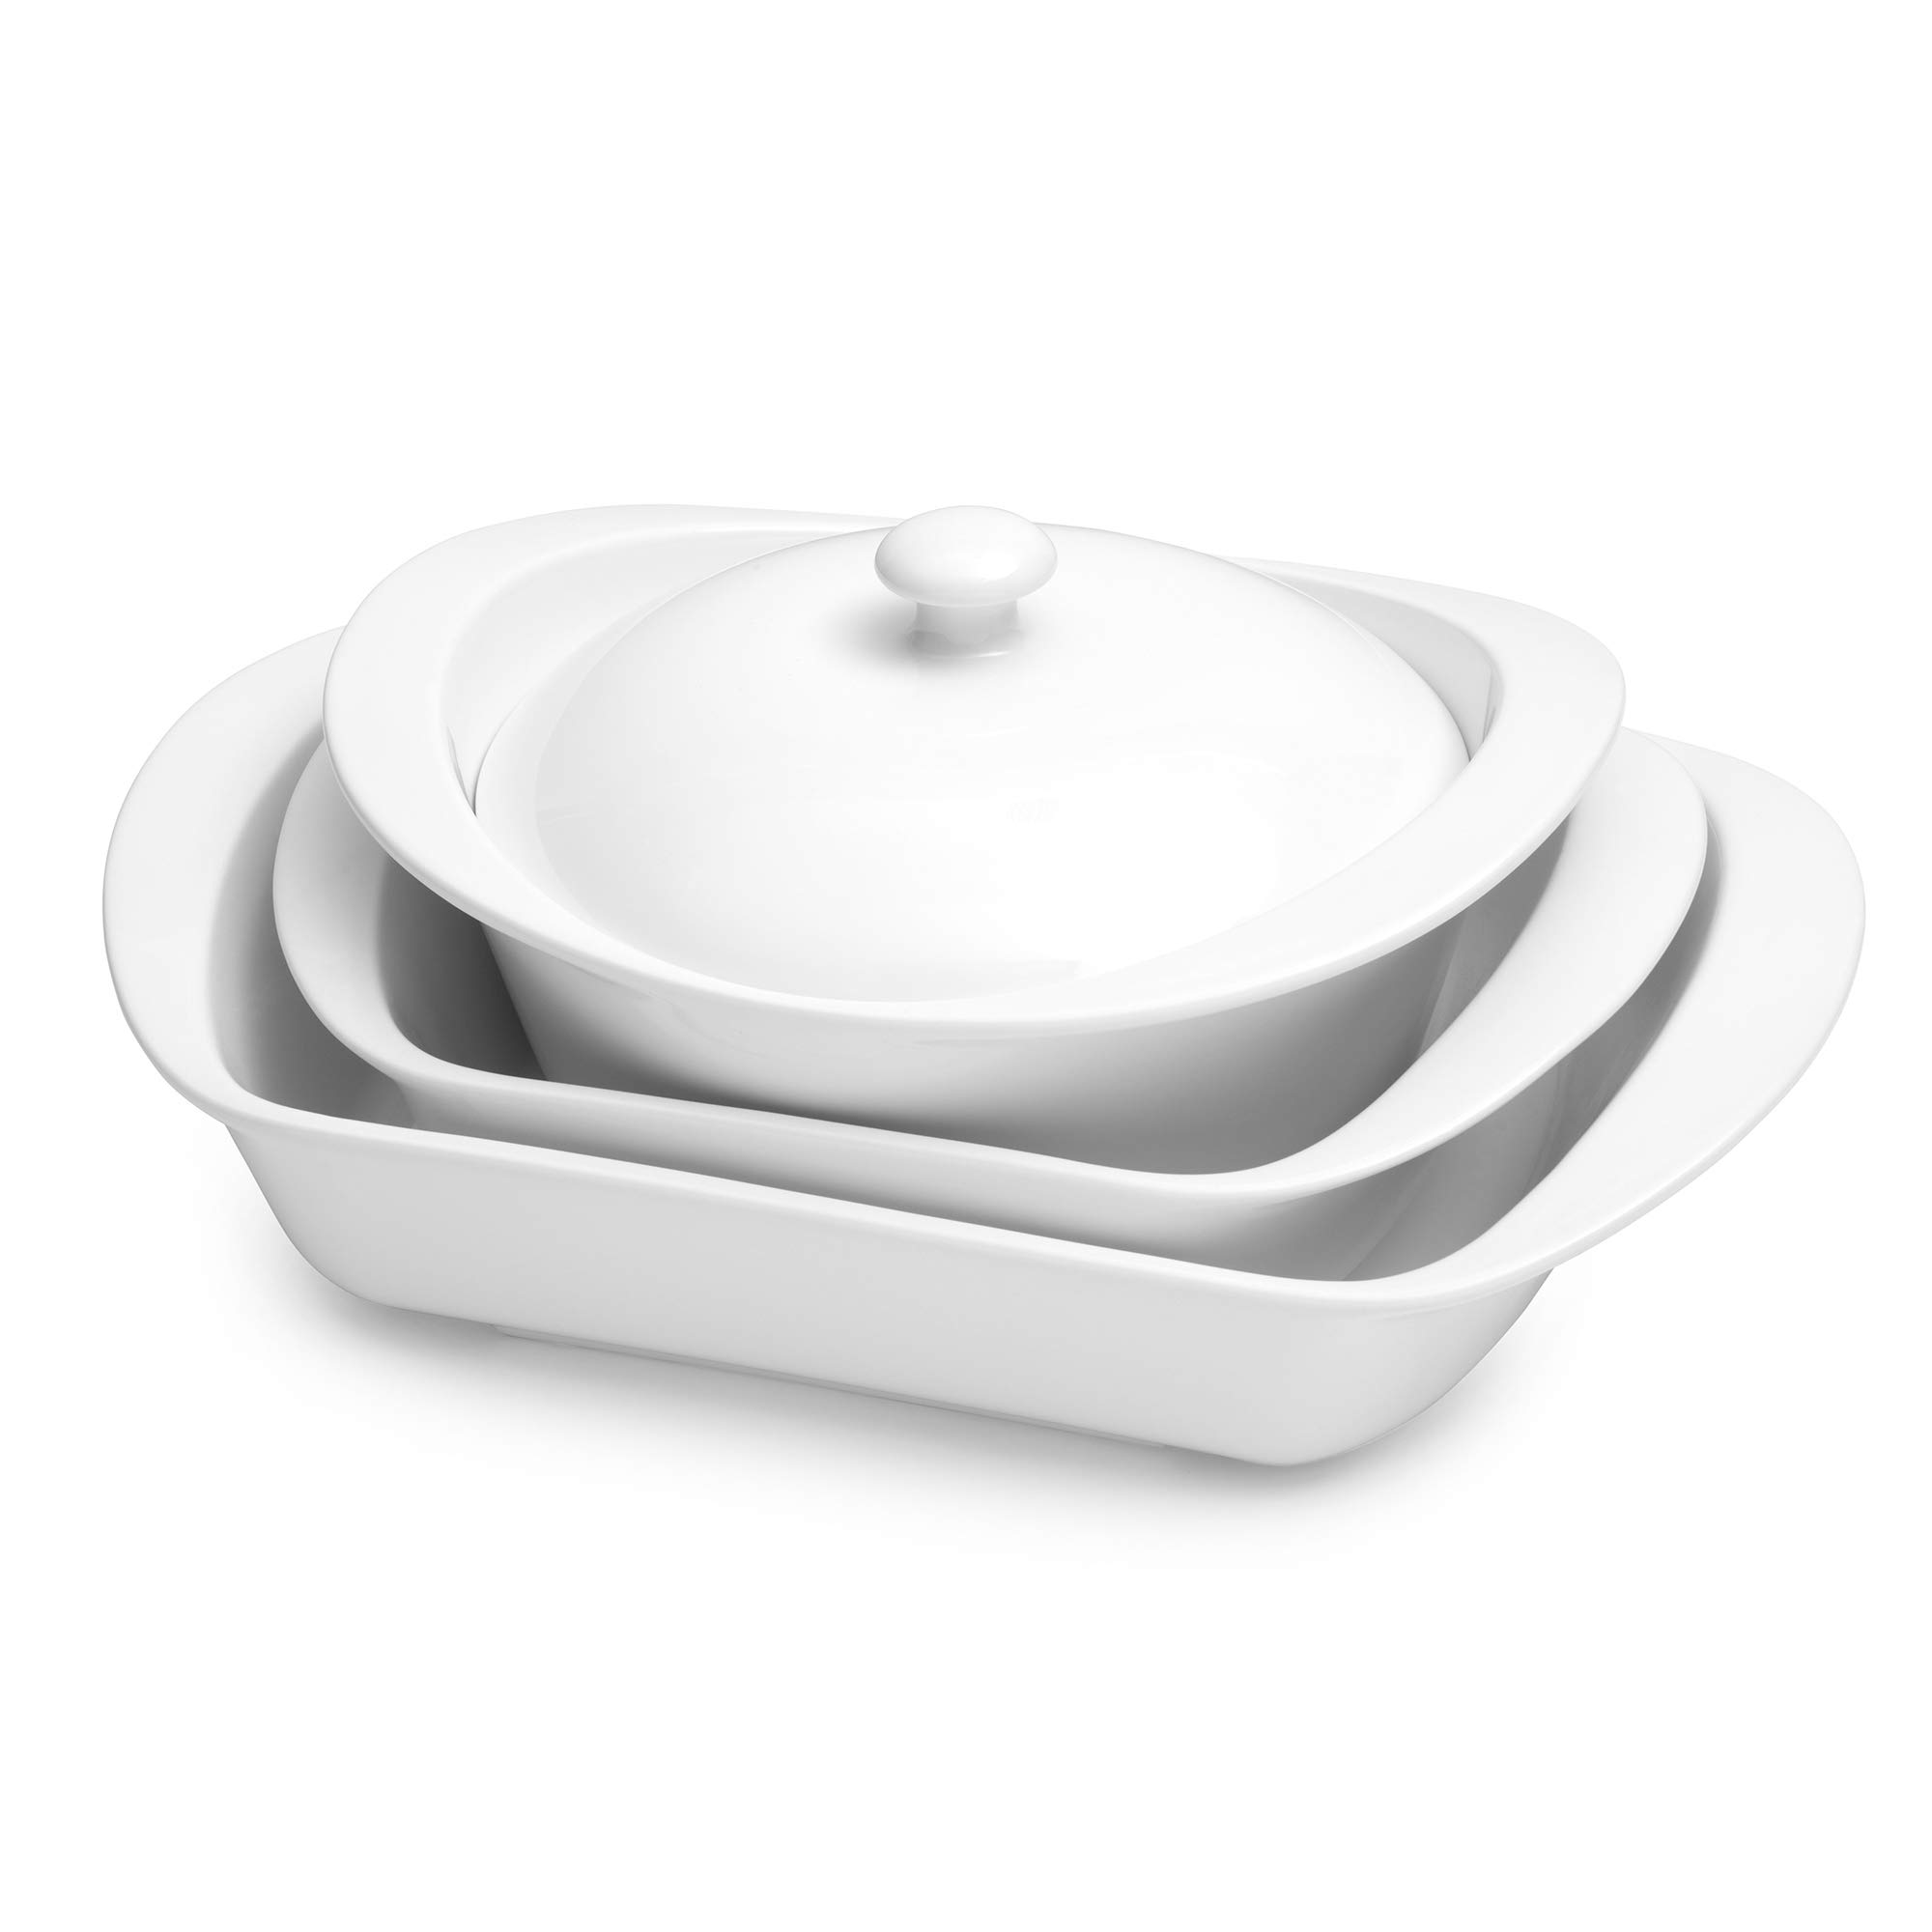 Certified International 89665 7 Piece Porcelain Set Cookware, Bakeware, Cooking Accessories, White by Certified International (Image #2)